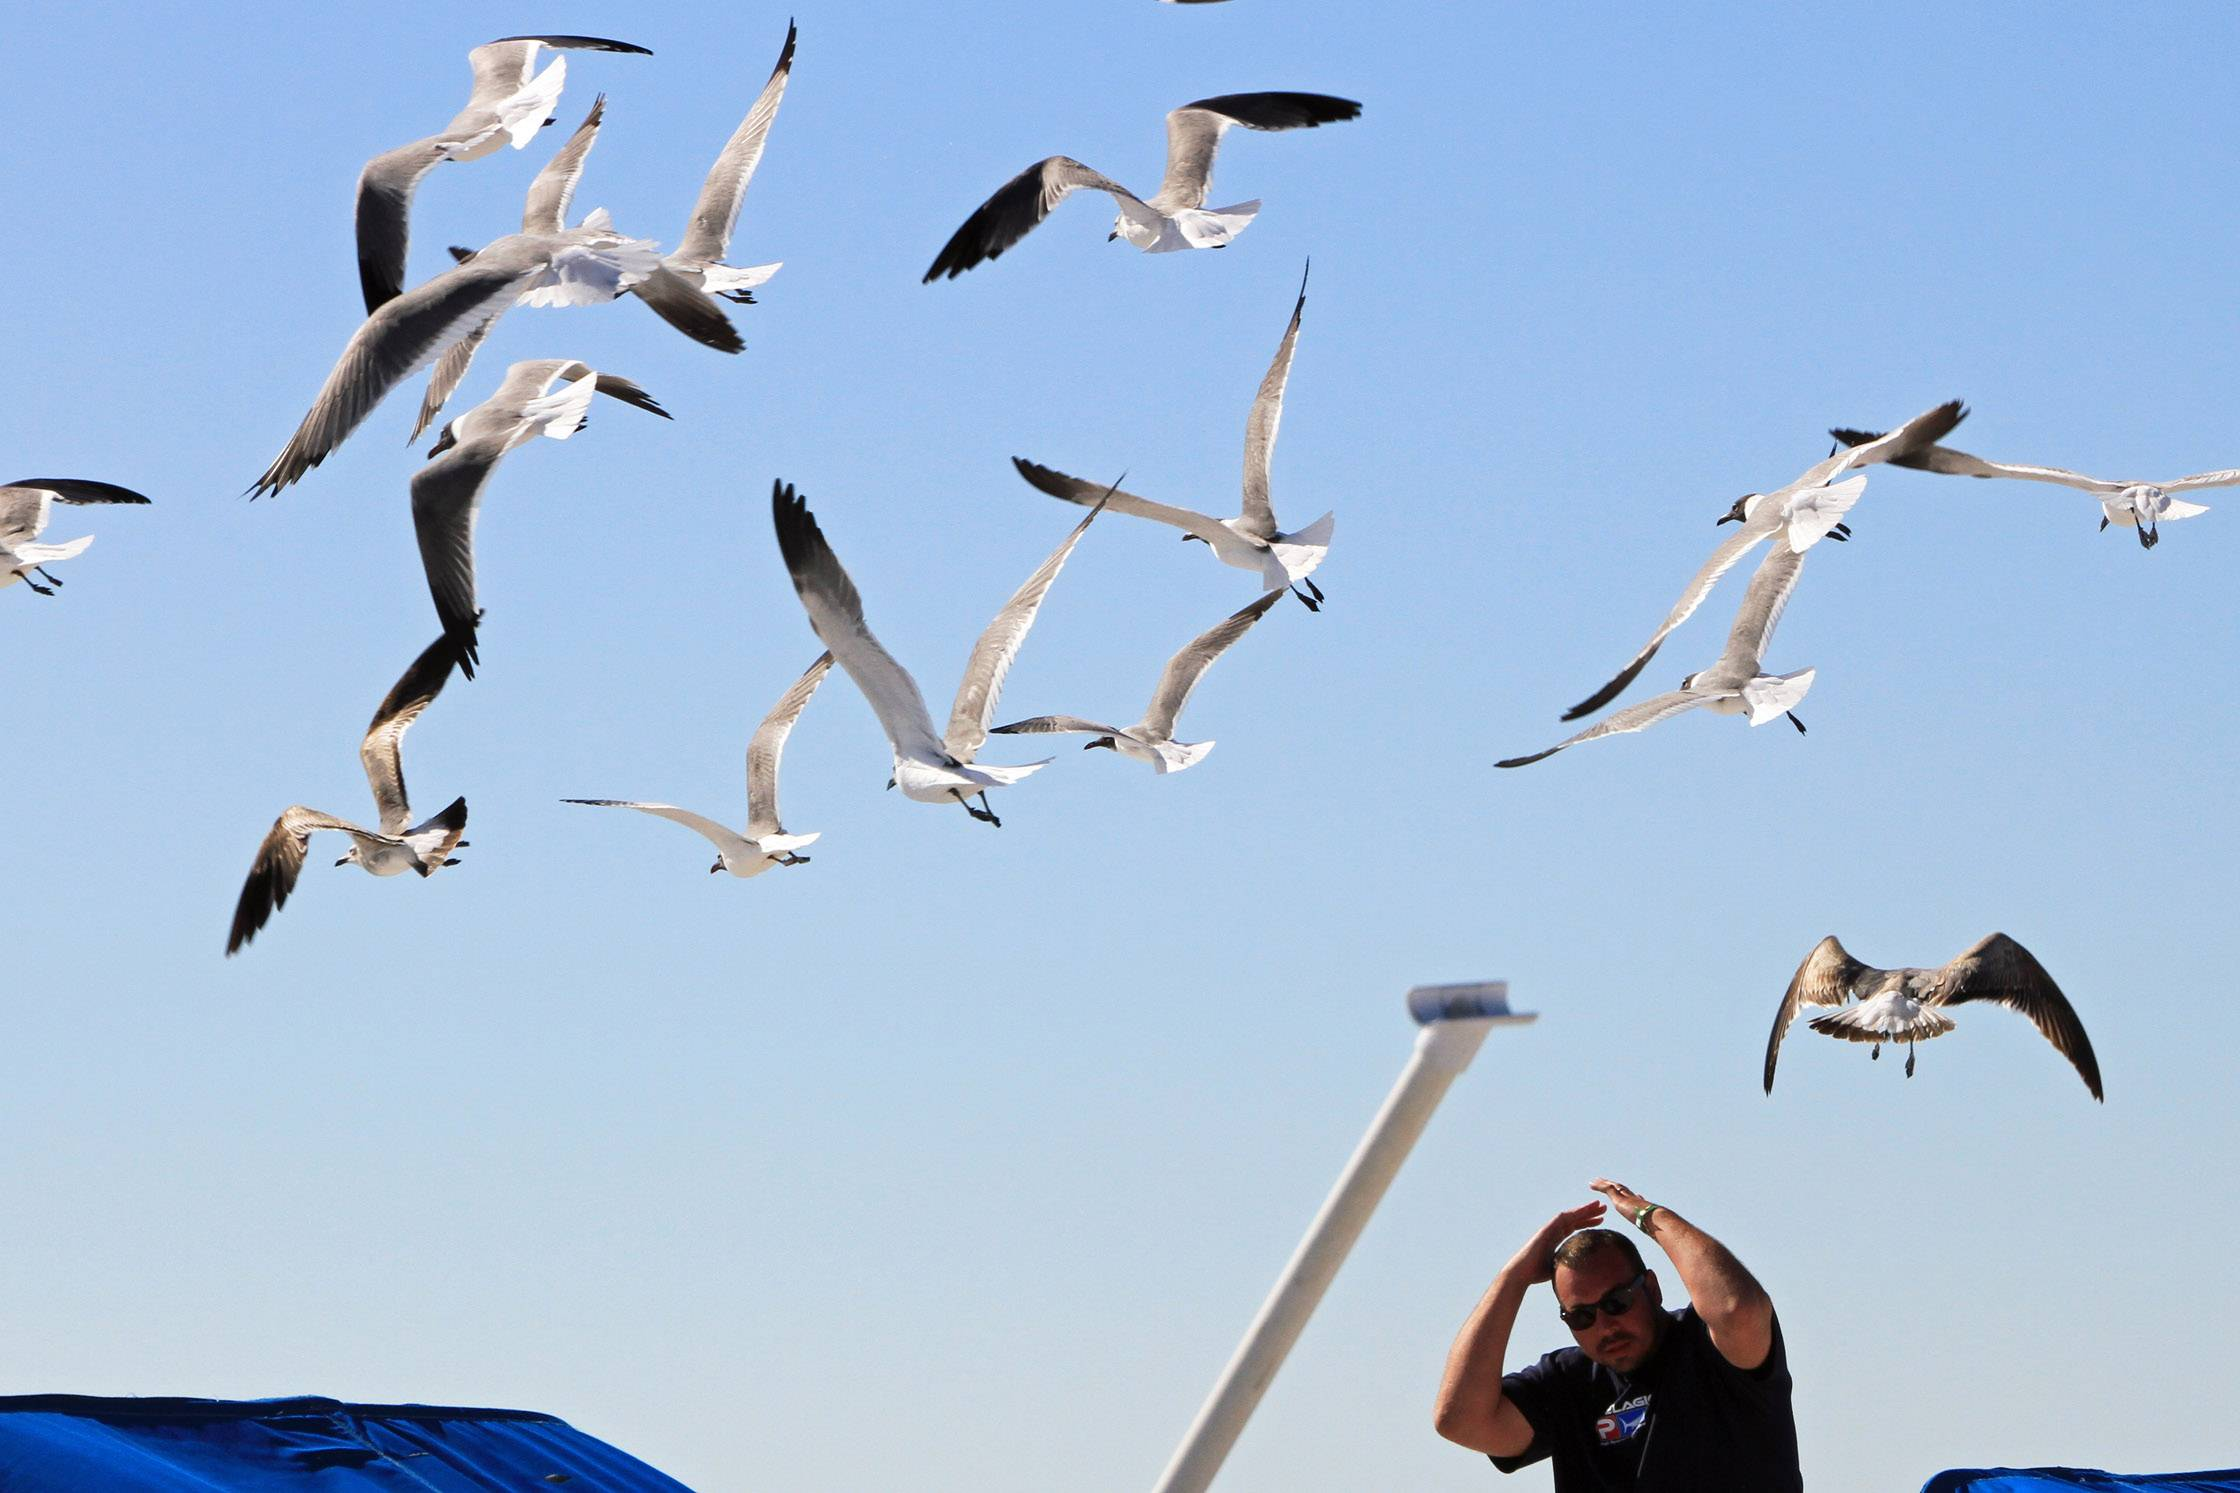 A fellow is buzzed by sea gulls after tossing food in to air on St. Pete Beach, Florida in March.